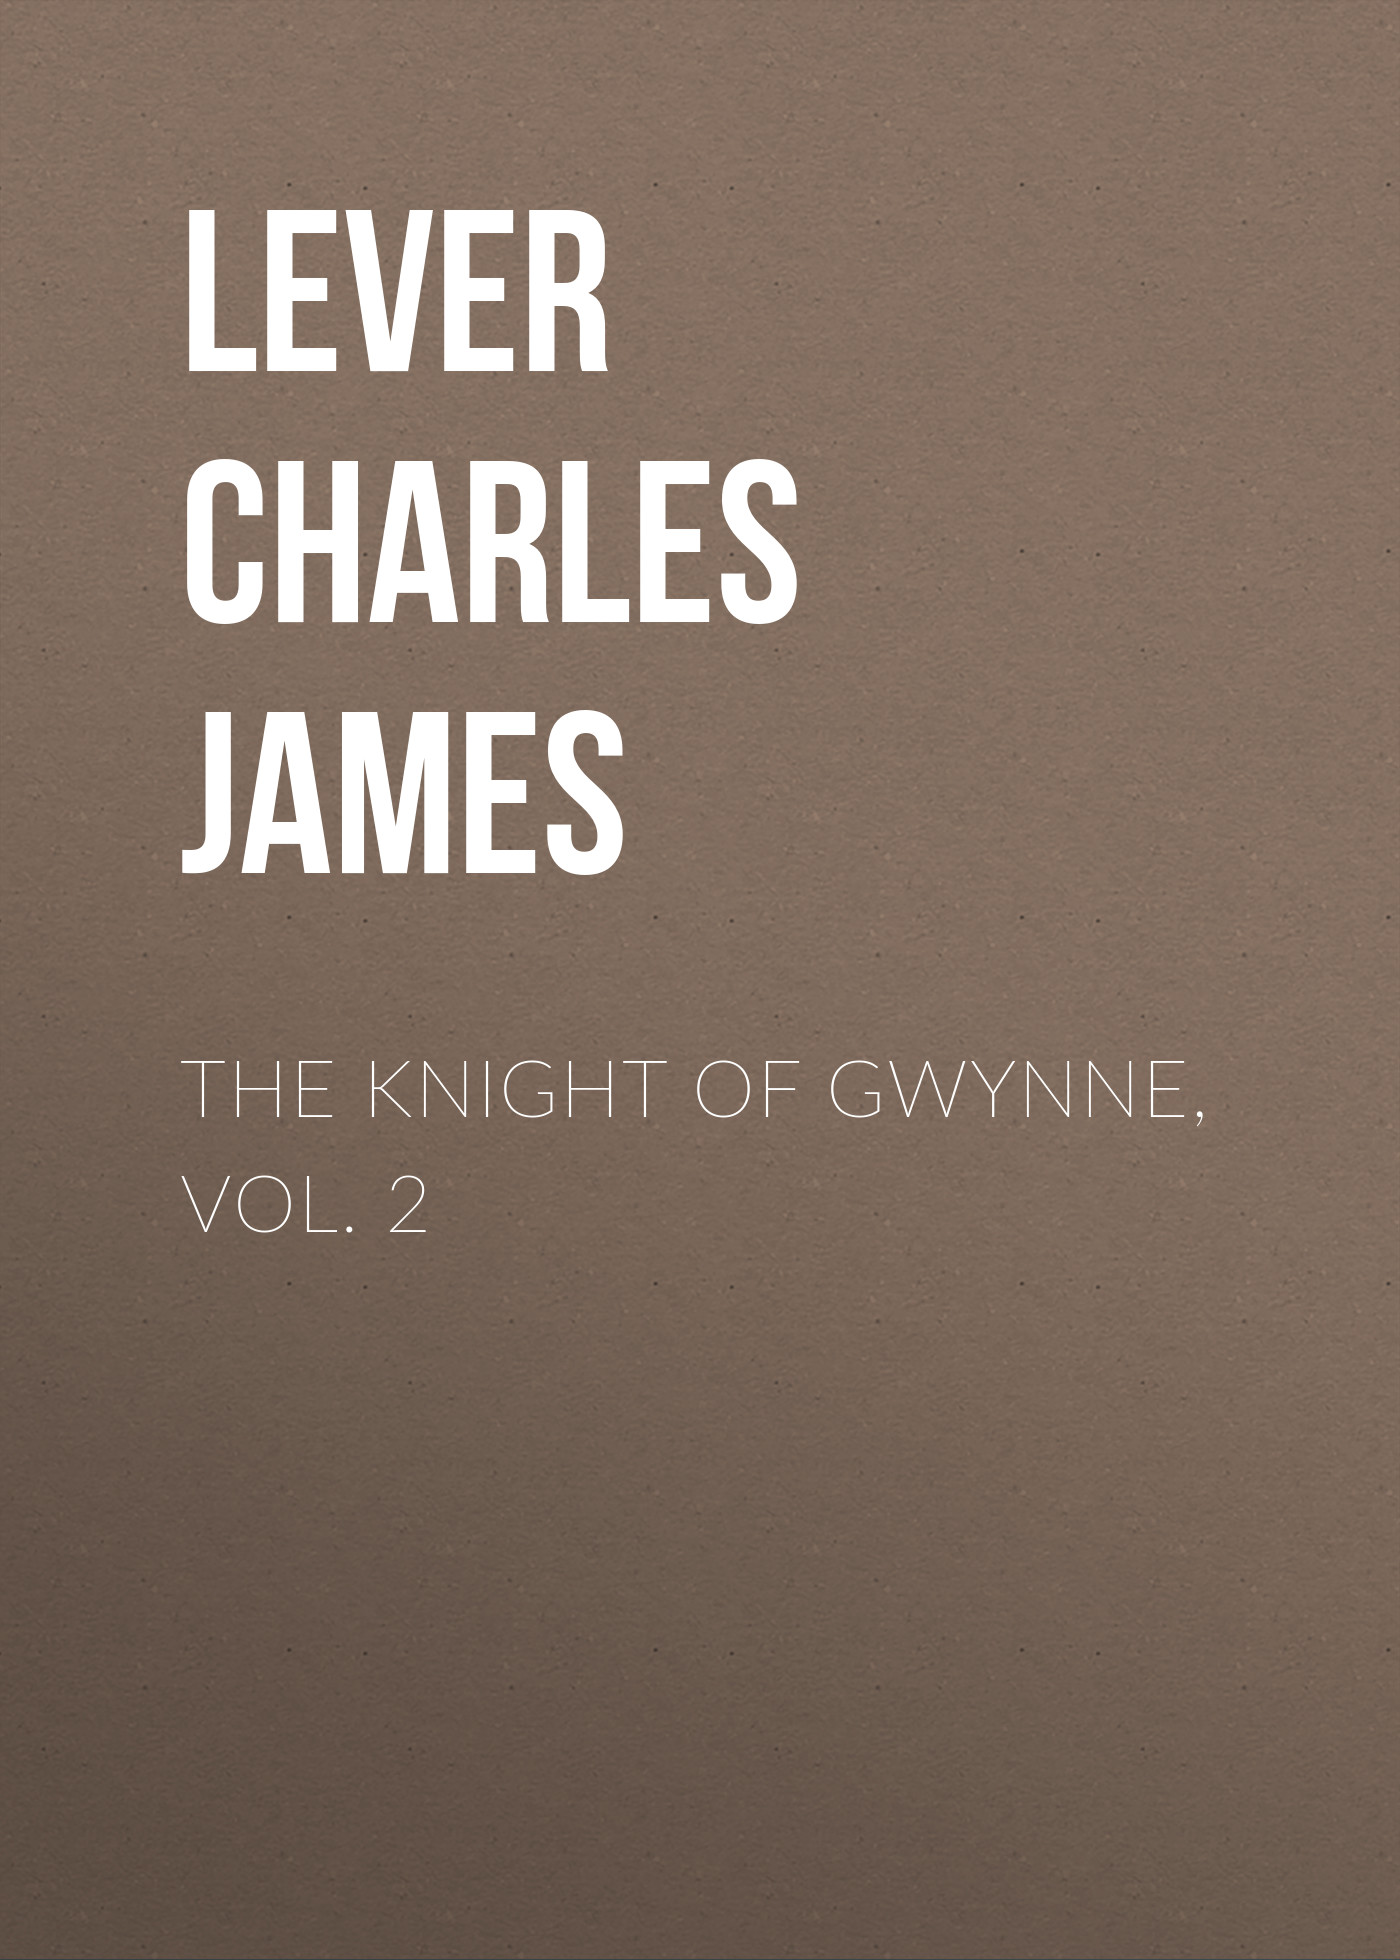 Lever Charles James The Knight Of Gwynne, Vol. 2 hansa amg20bfh 700